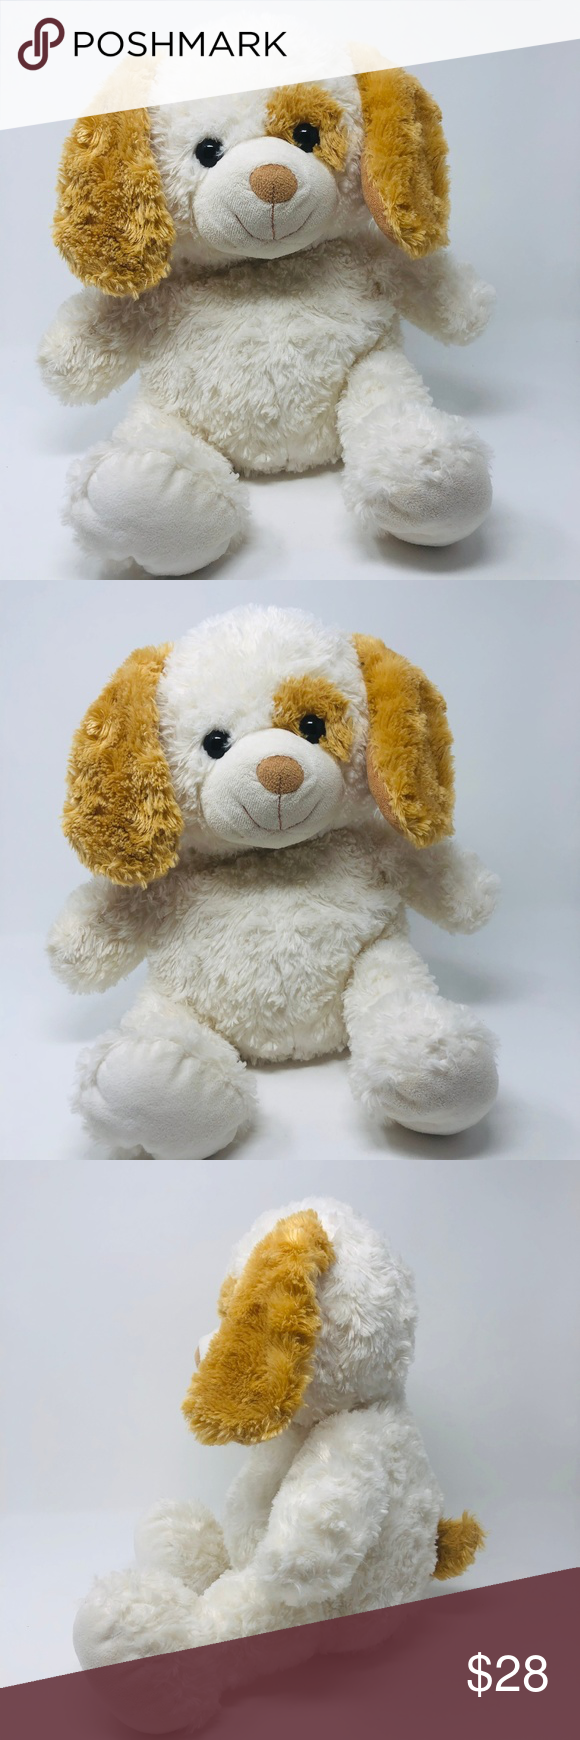 Walmart Plush 14Inch Puppy Dog Dogs and puppies